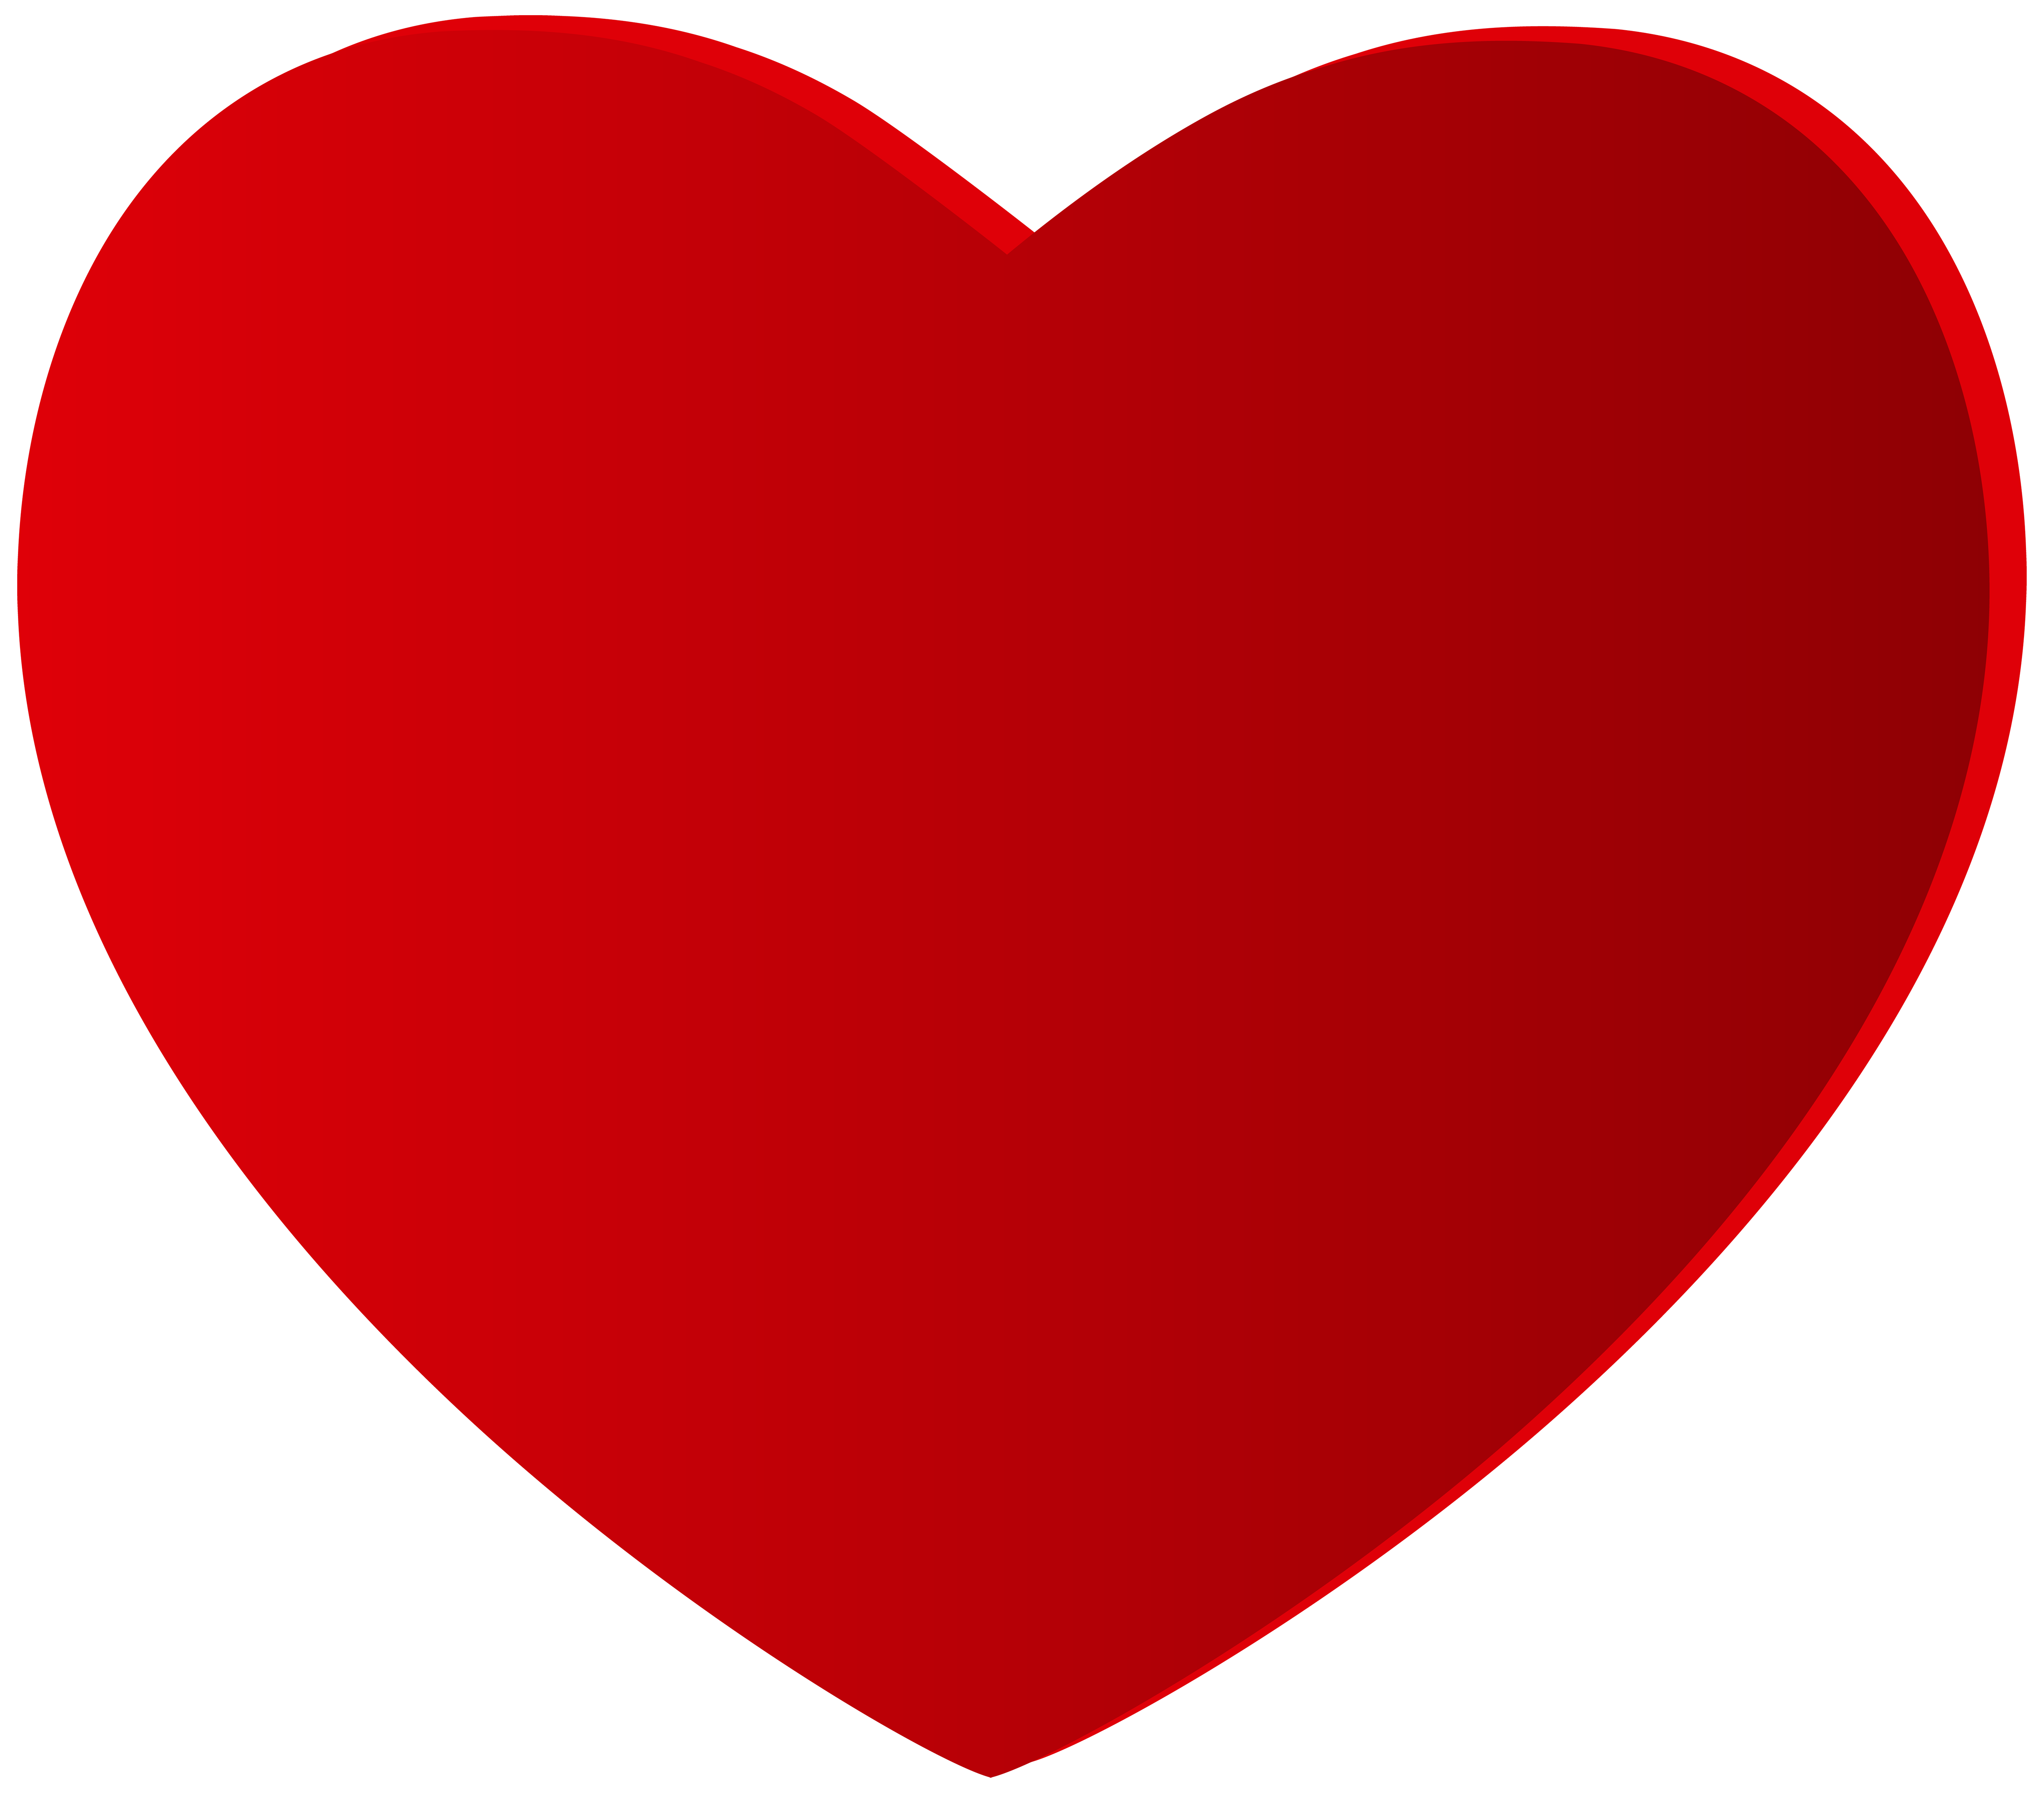 Large heart clipart best. Red hearts png transparent stock